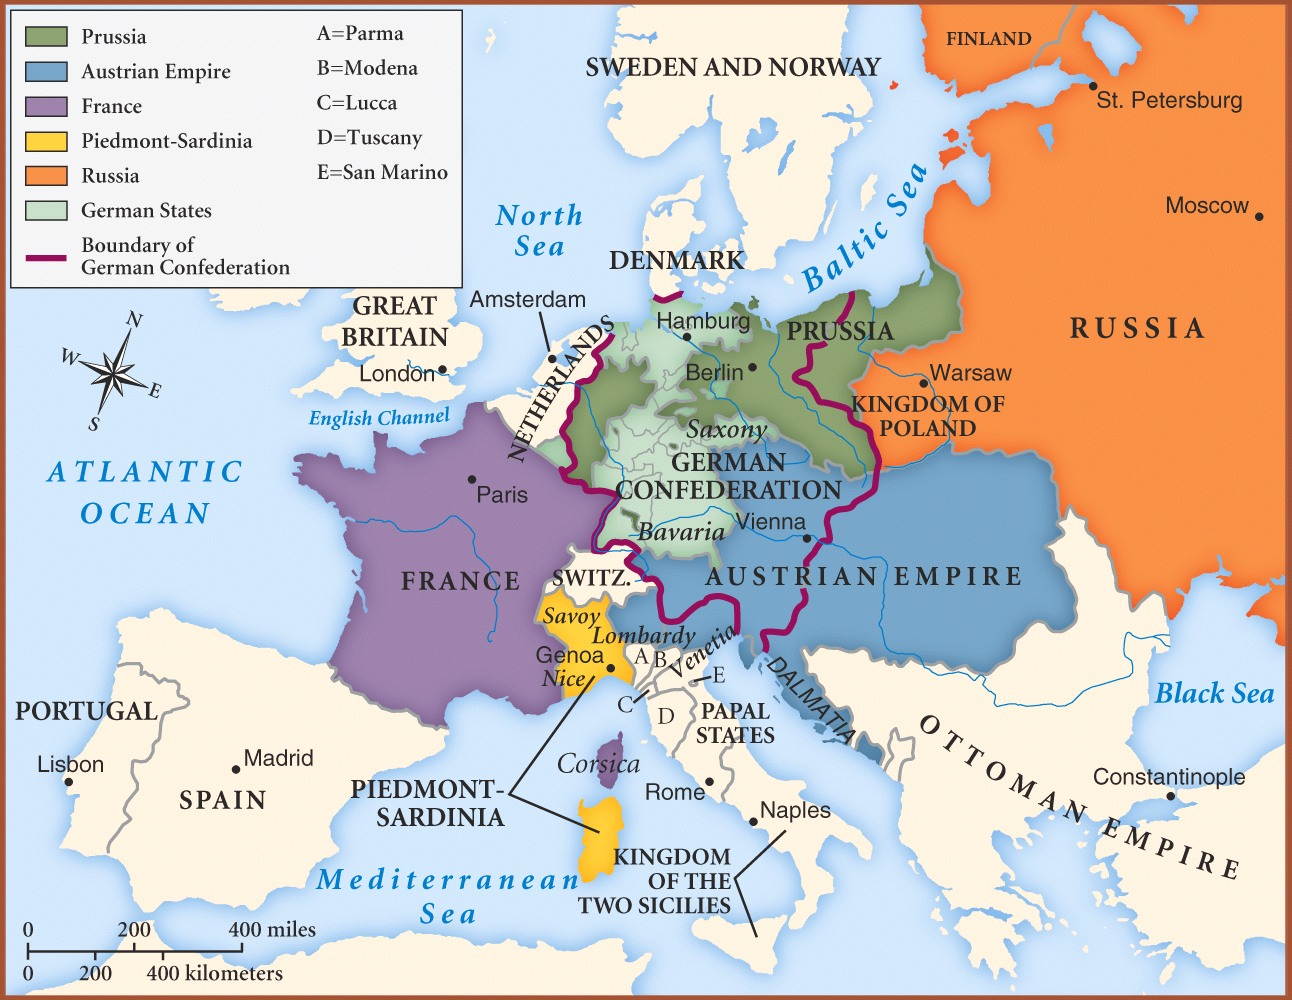 Europe after the Congress of Vienna 1815